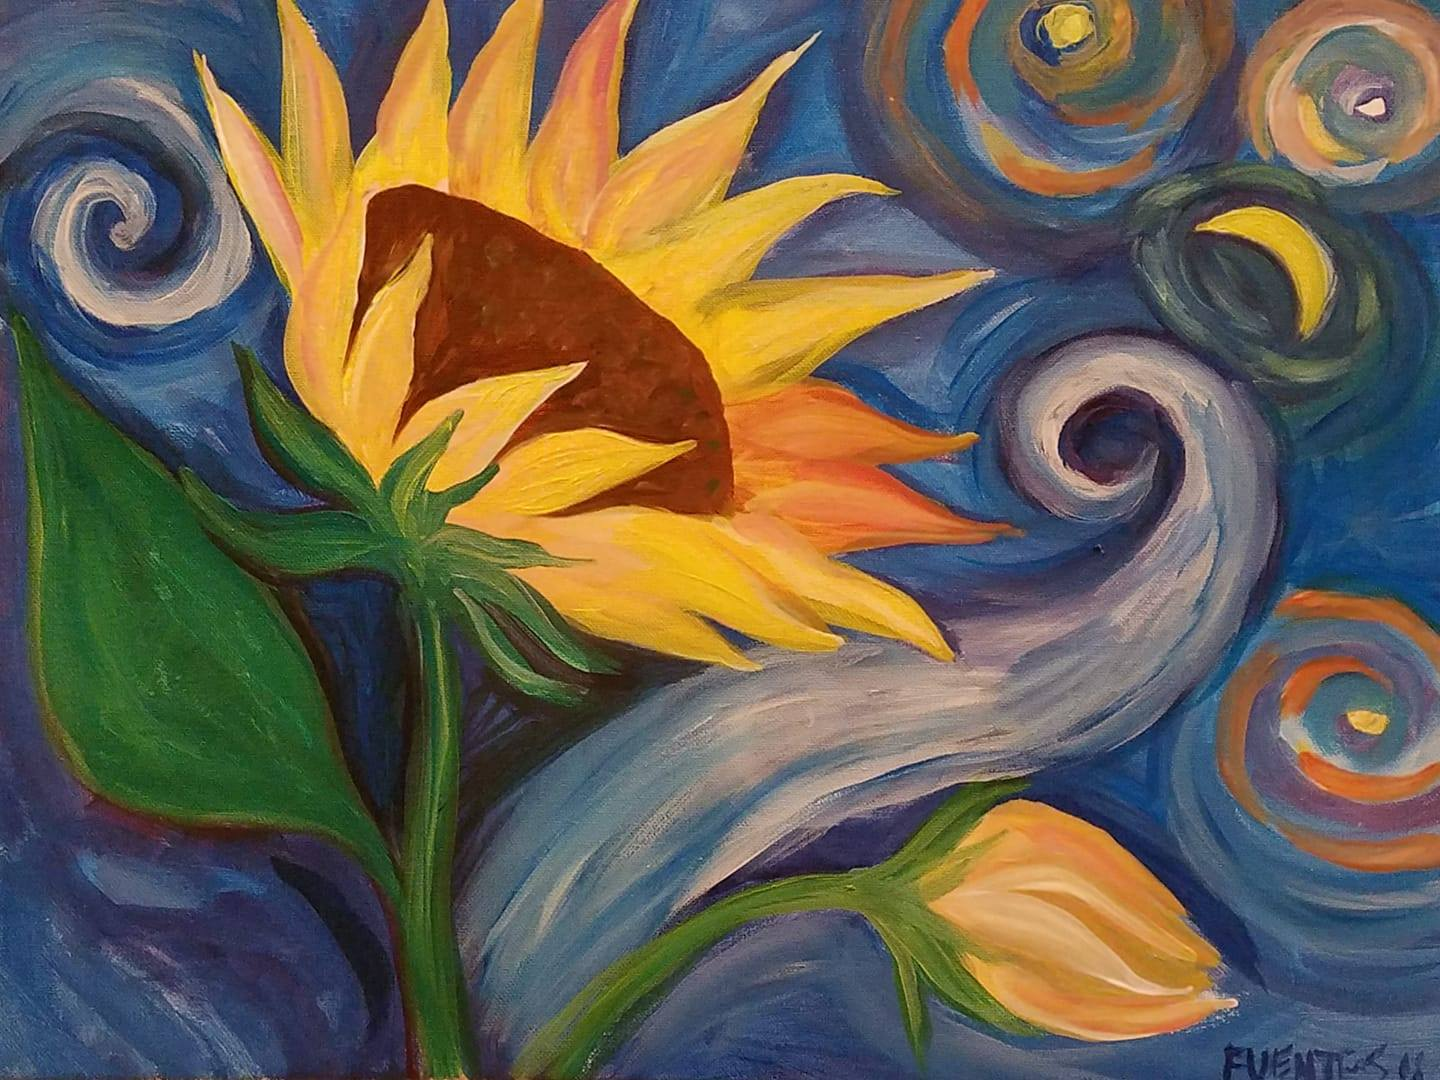 5/16  6-9pm  Paint and Sip with Judy Fuentes!